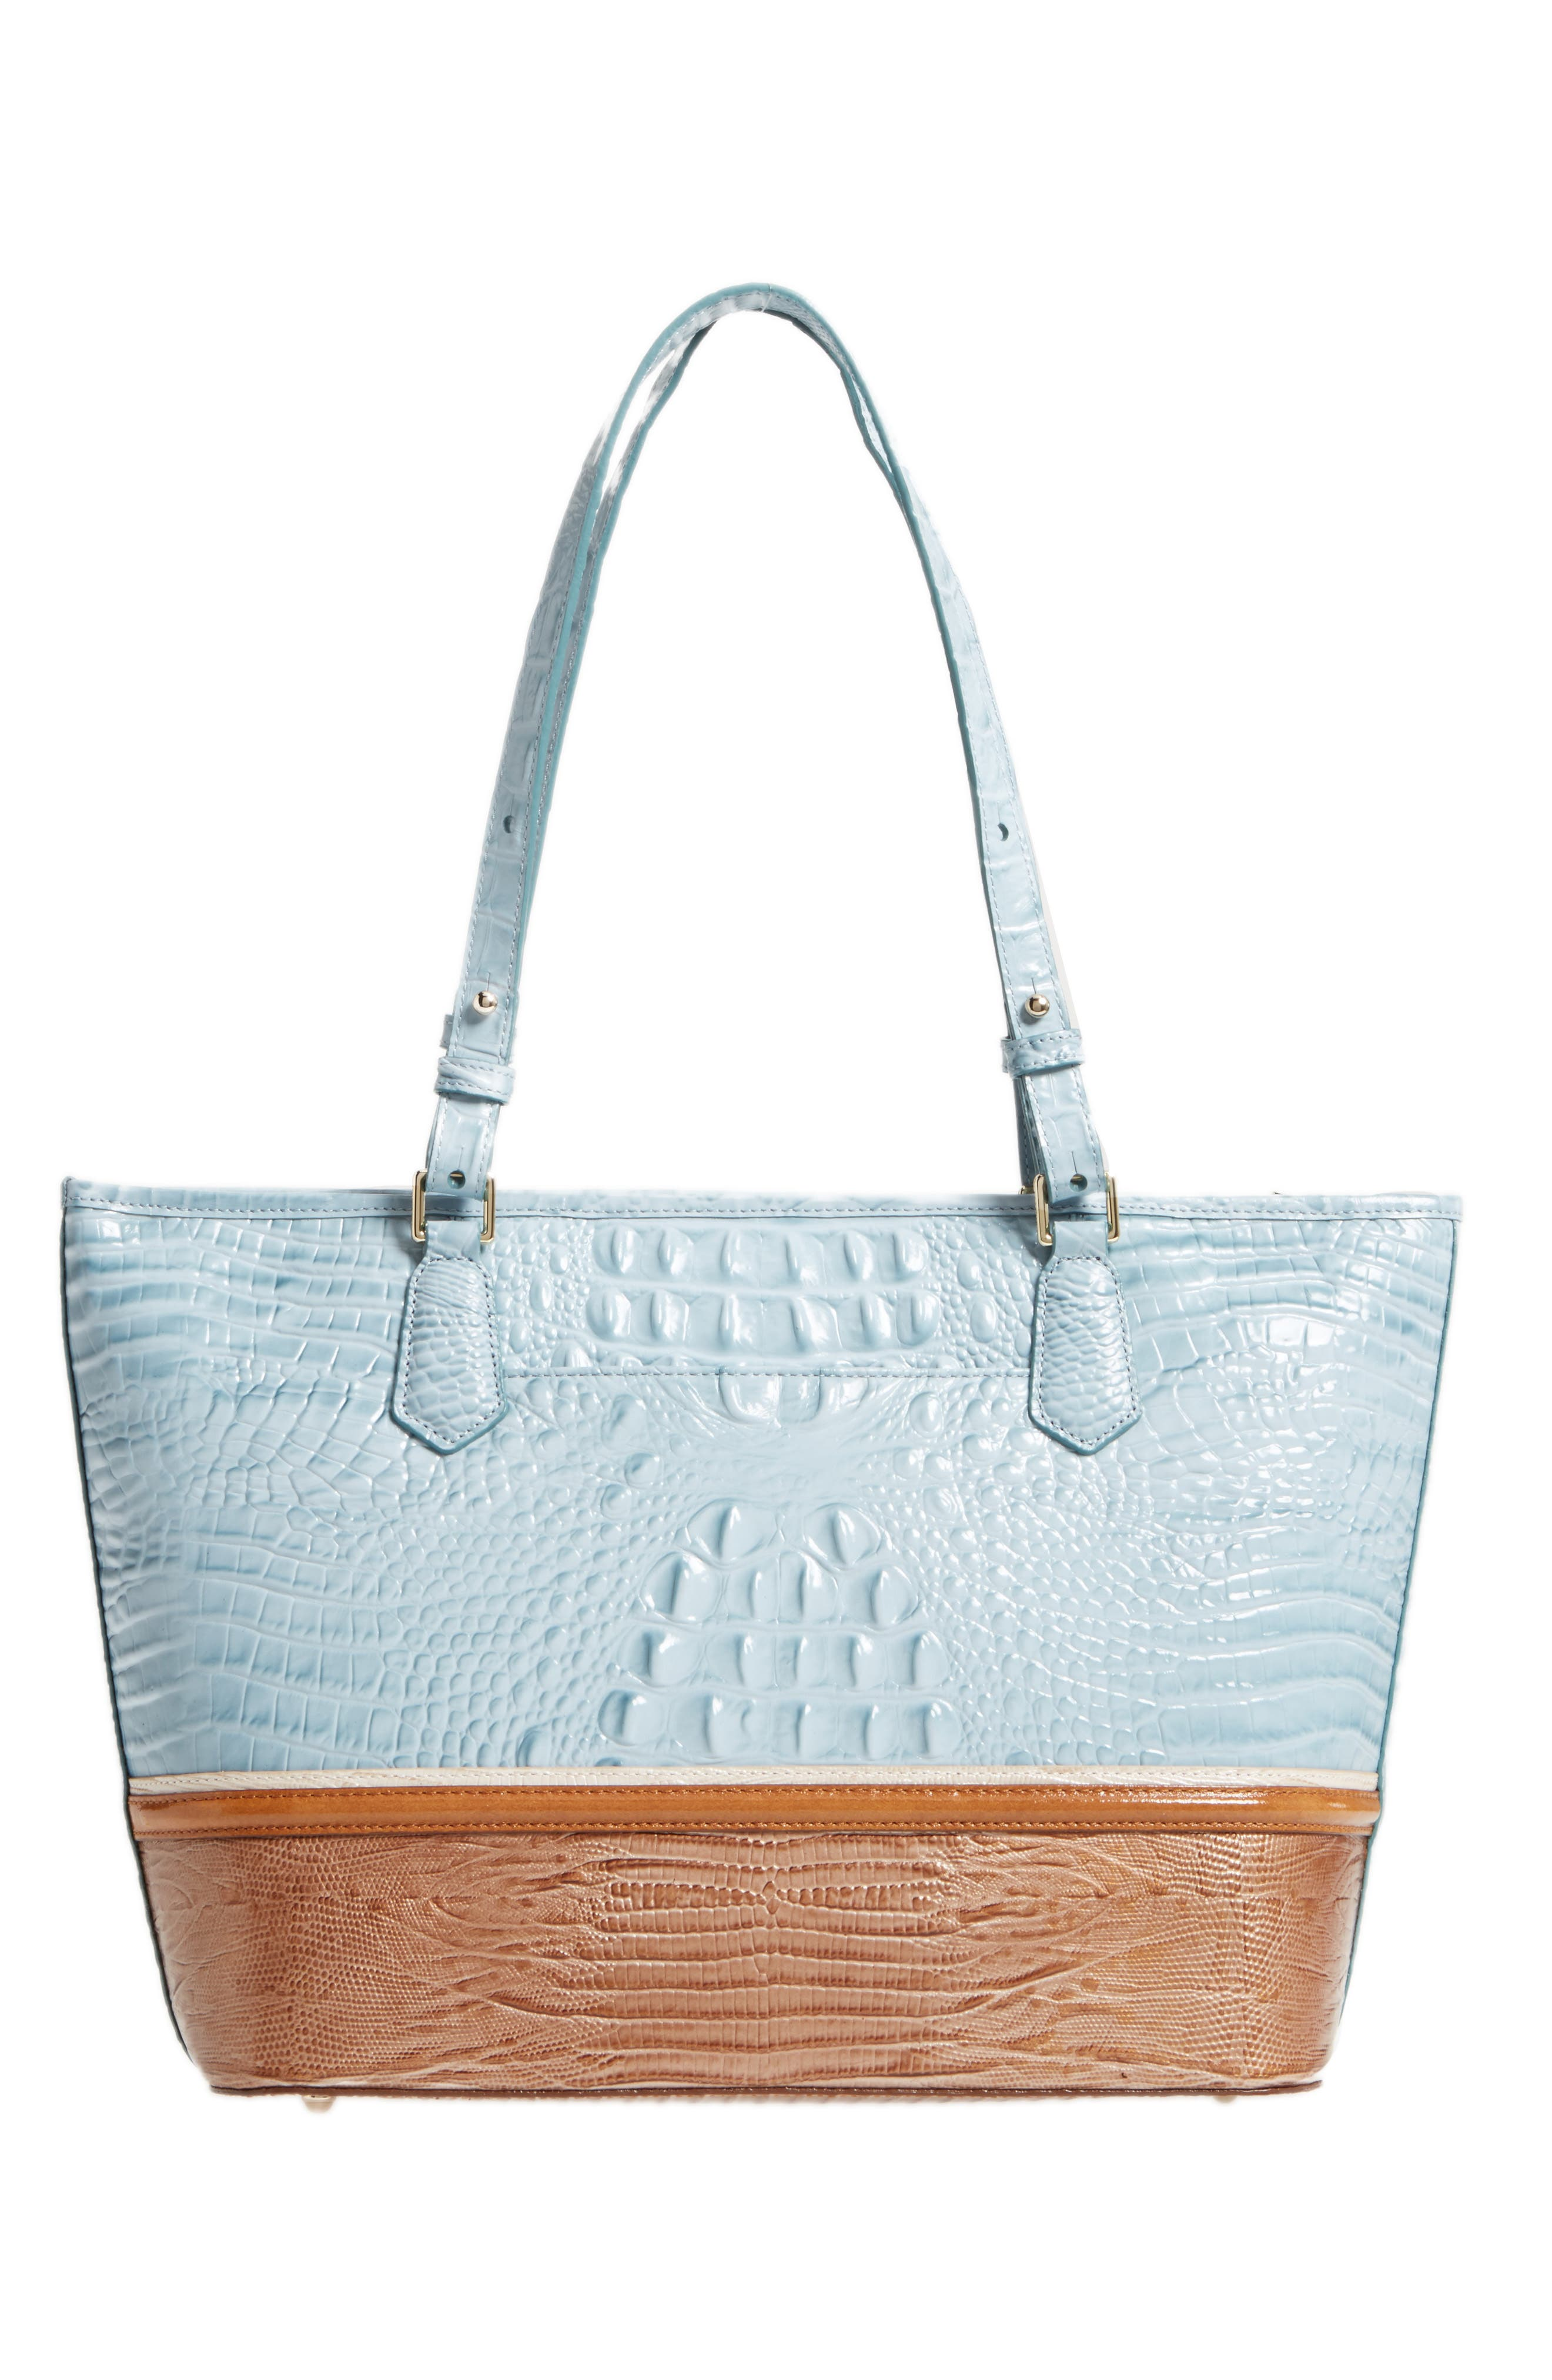 Medium Asher Leather Tote,                             Alternate thumbnail 3, color,                             Sky